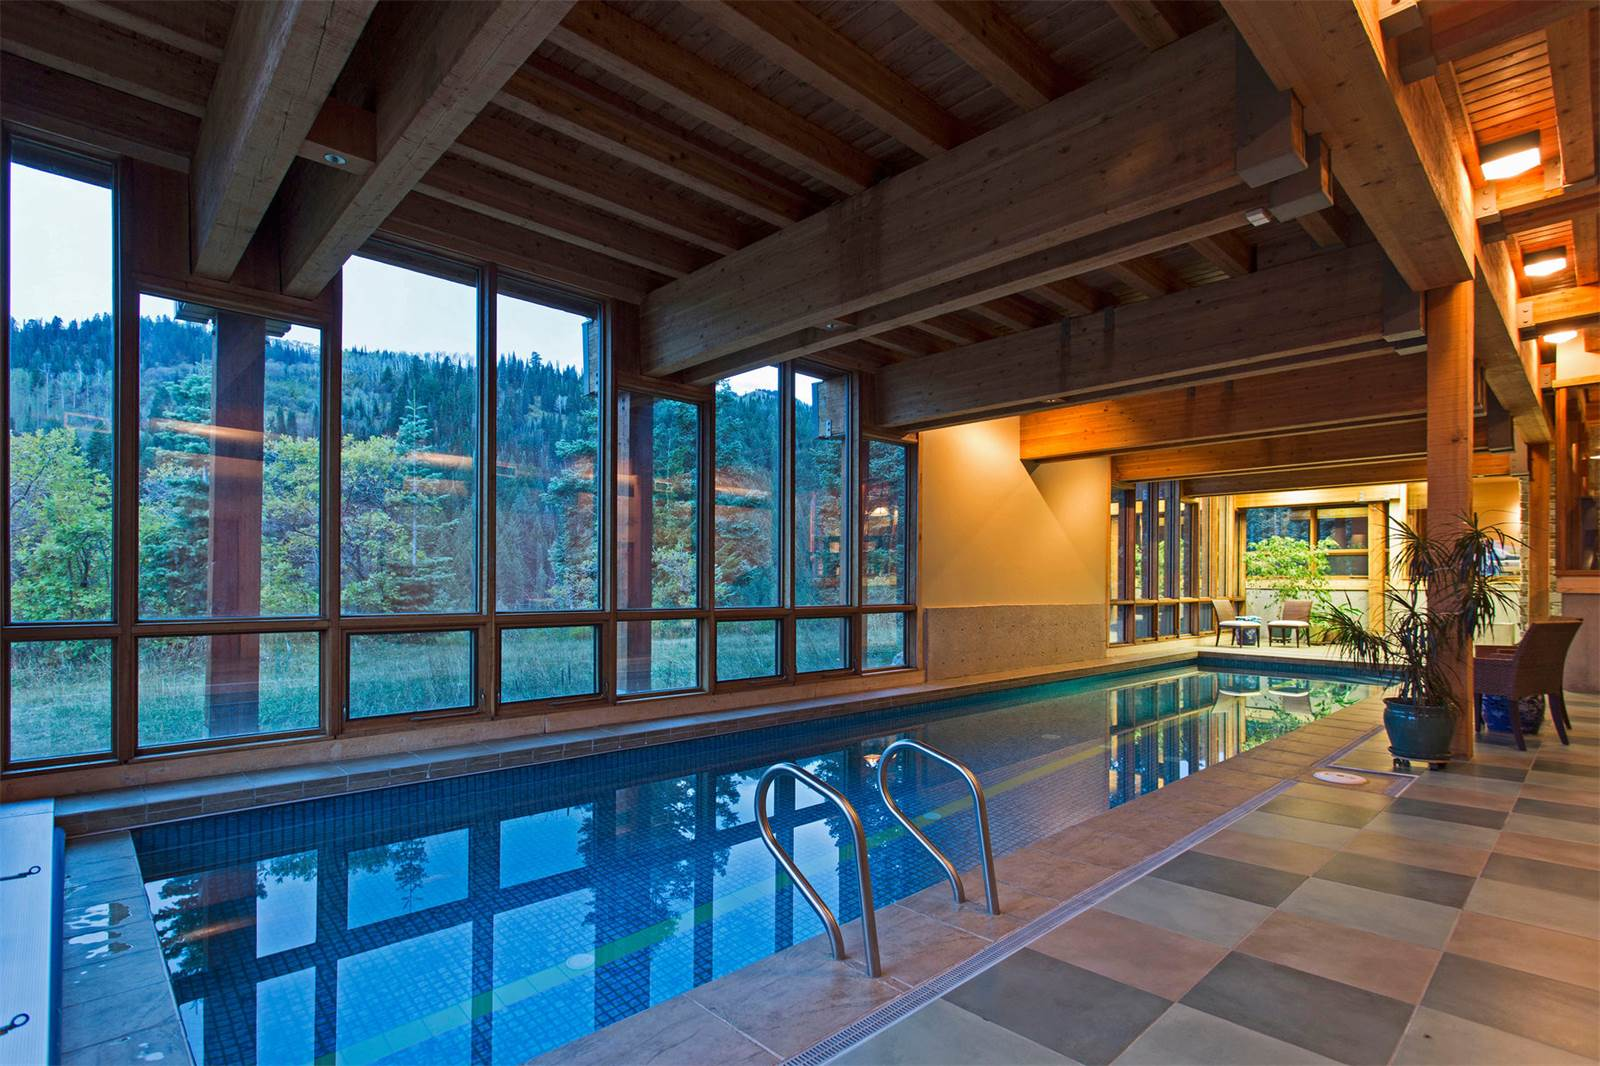 wonderful homes for sale in utah with swimming pools #5: Midway, Utah u2013 Encompassing 331 pristine acres of Utah mountain glory,  u201cSnake Creek Canyon Retreatu201d is a Frank Lloyd Wright inspired, approximate  10,400 ...